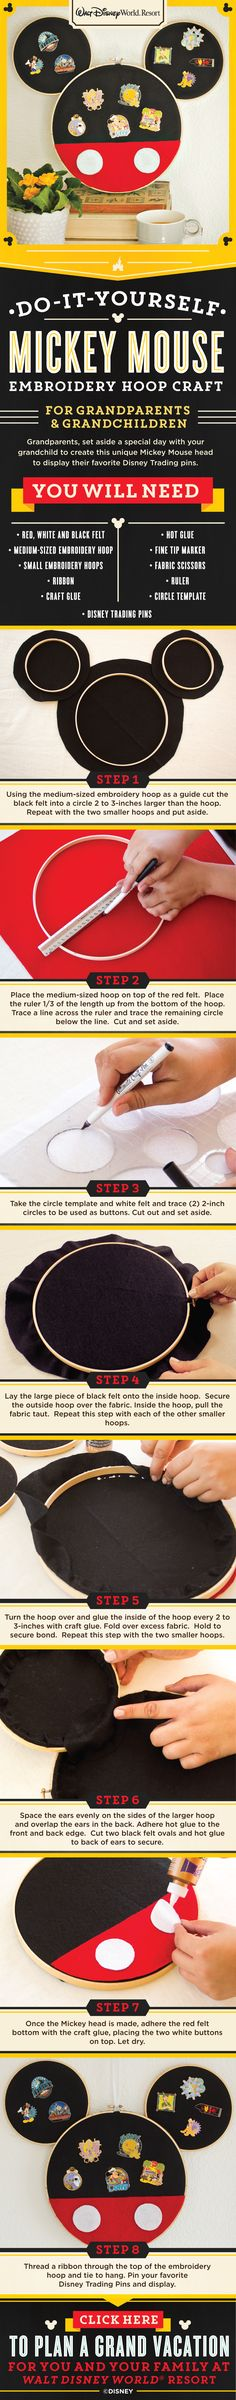 How to make a Mickey Mouse embroidery hoop craft to display your Disney Parks pins